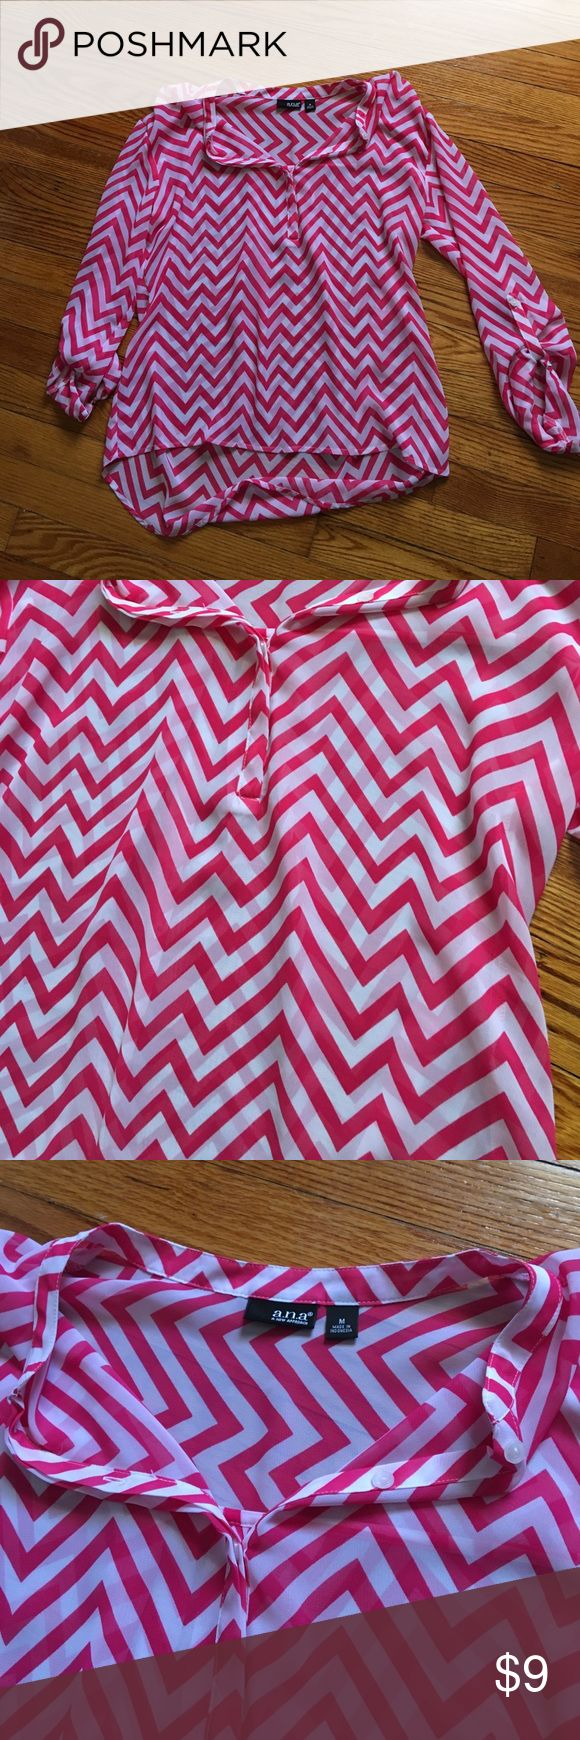 Pink Chevron Blouse Pink and white chevron blouse a.n.a Tops Blouses